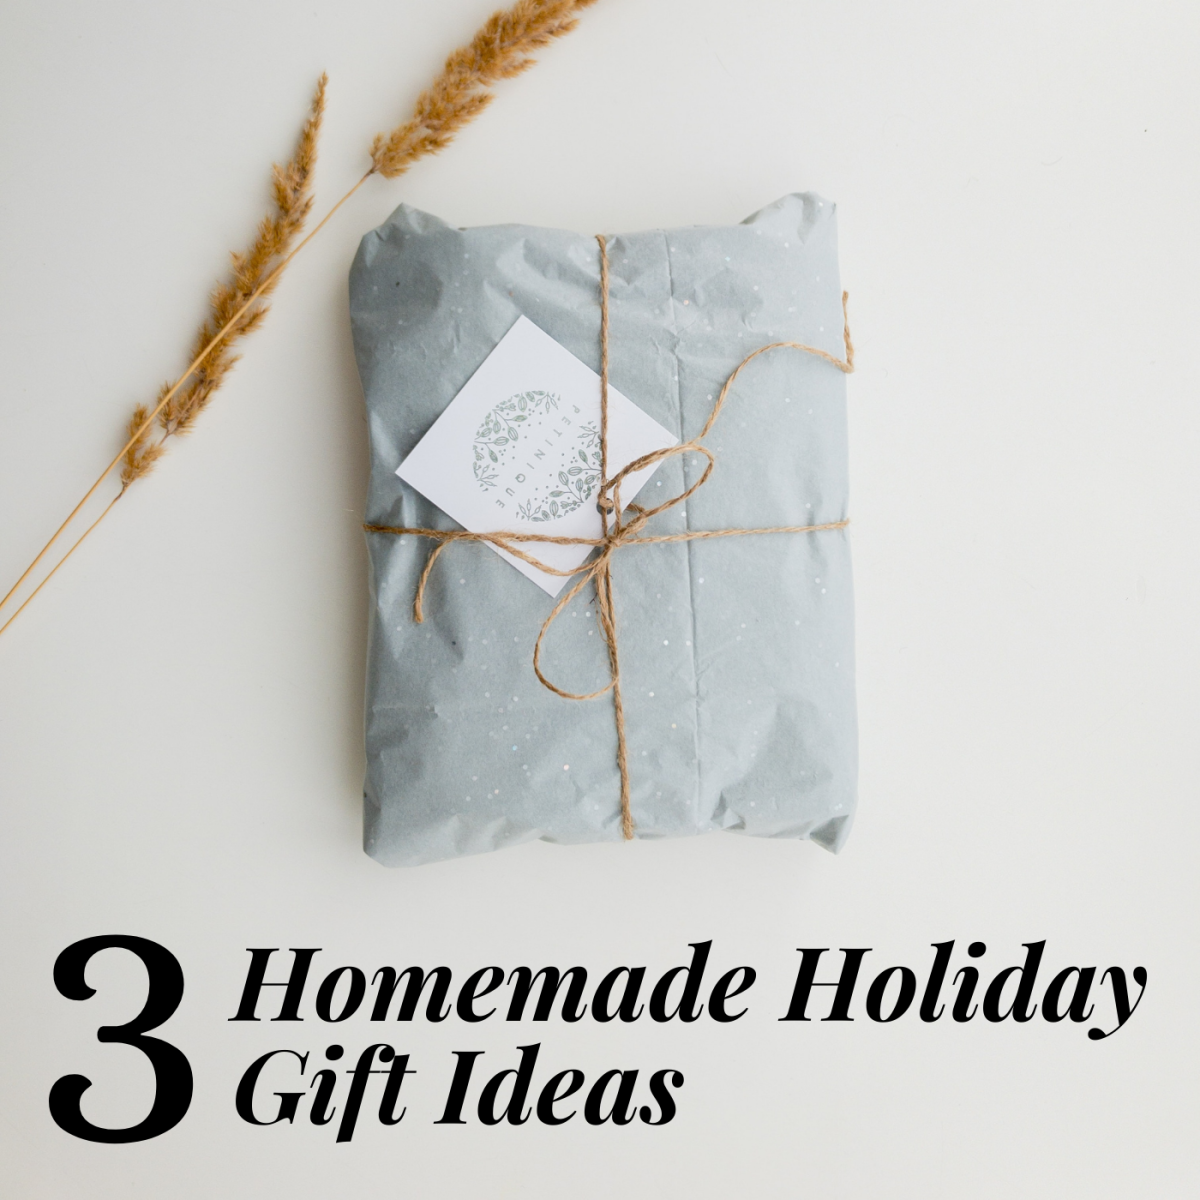 Put some heart into your holiday gifts by making them at home with love.